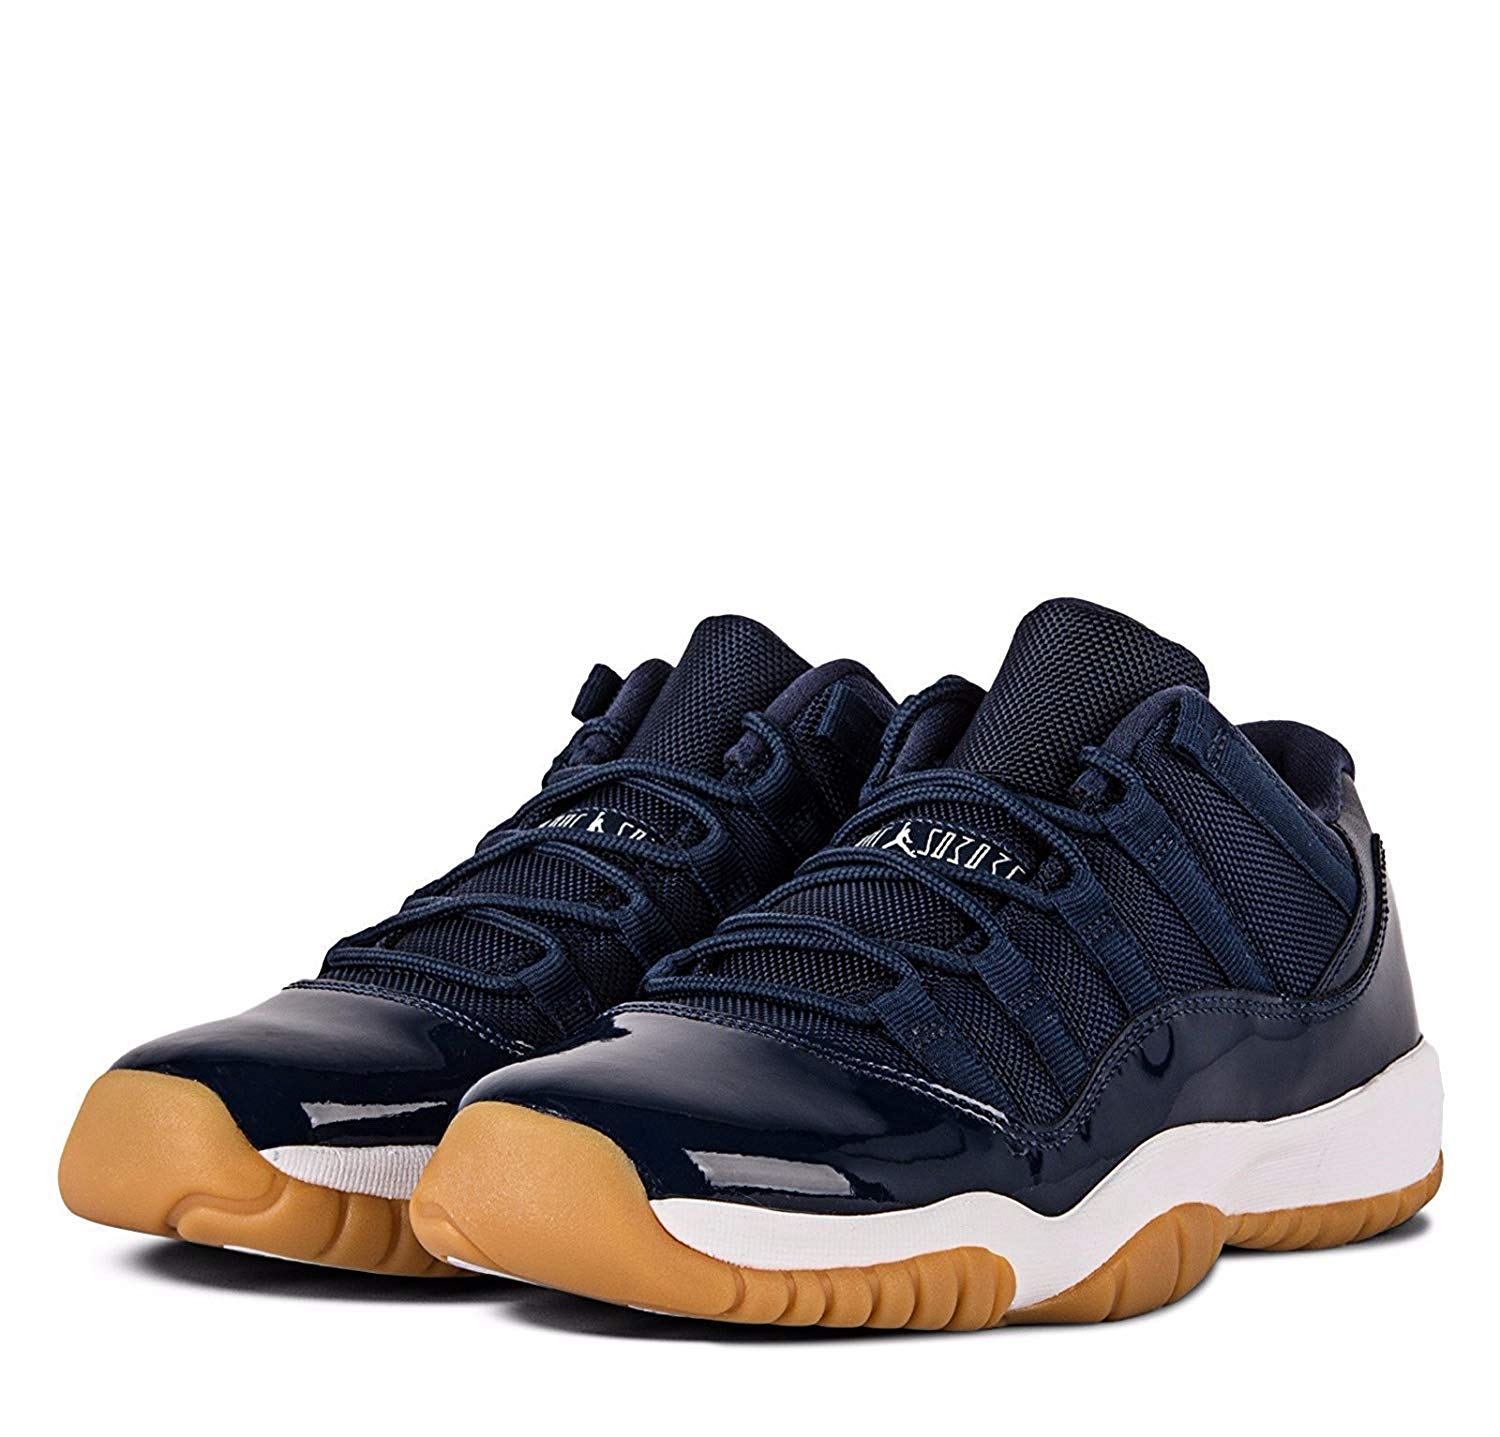 air jordan xi boys